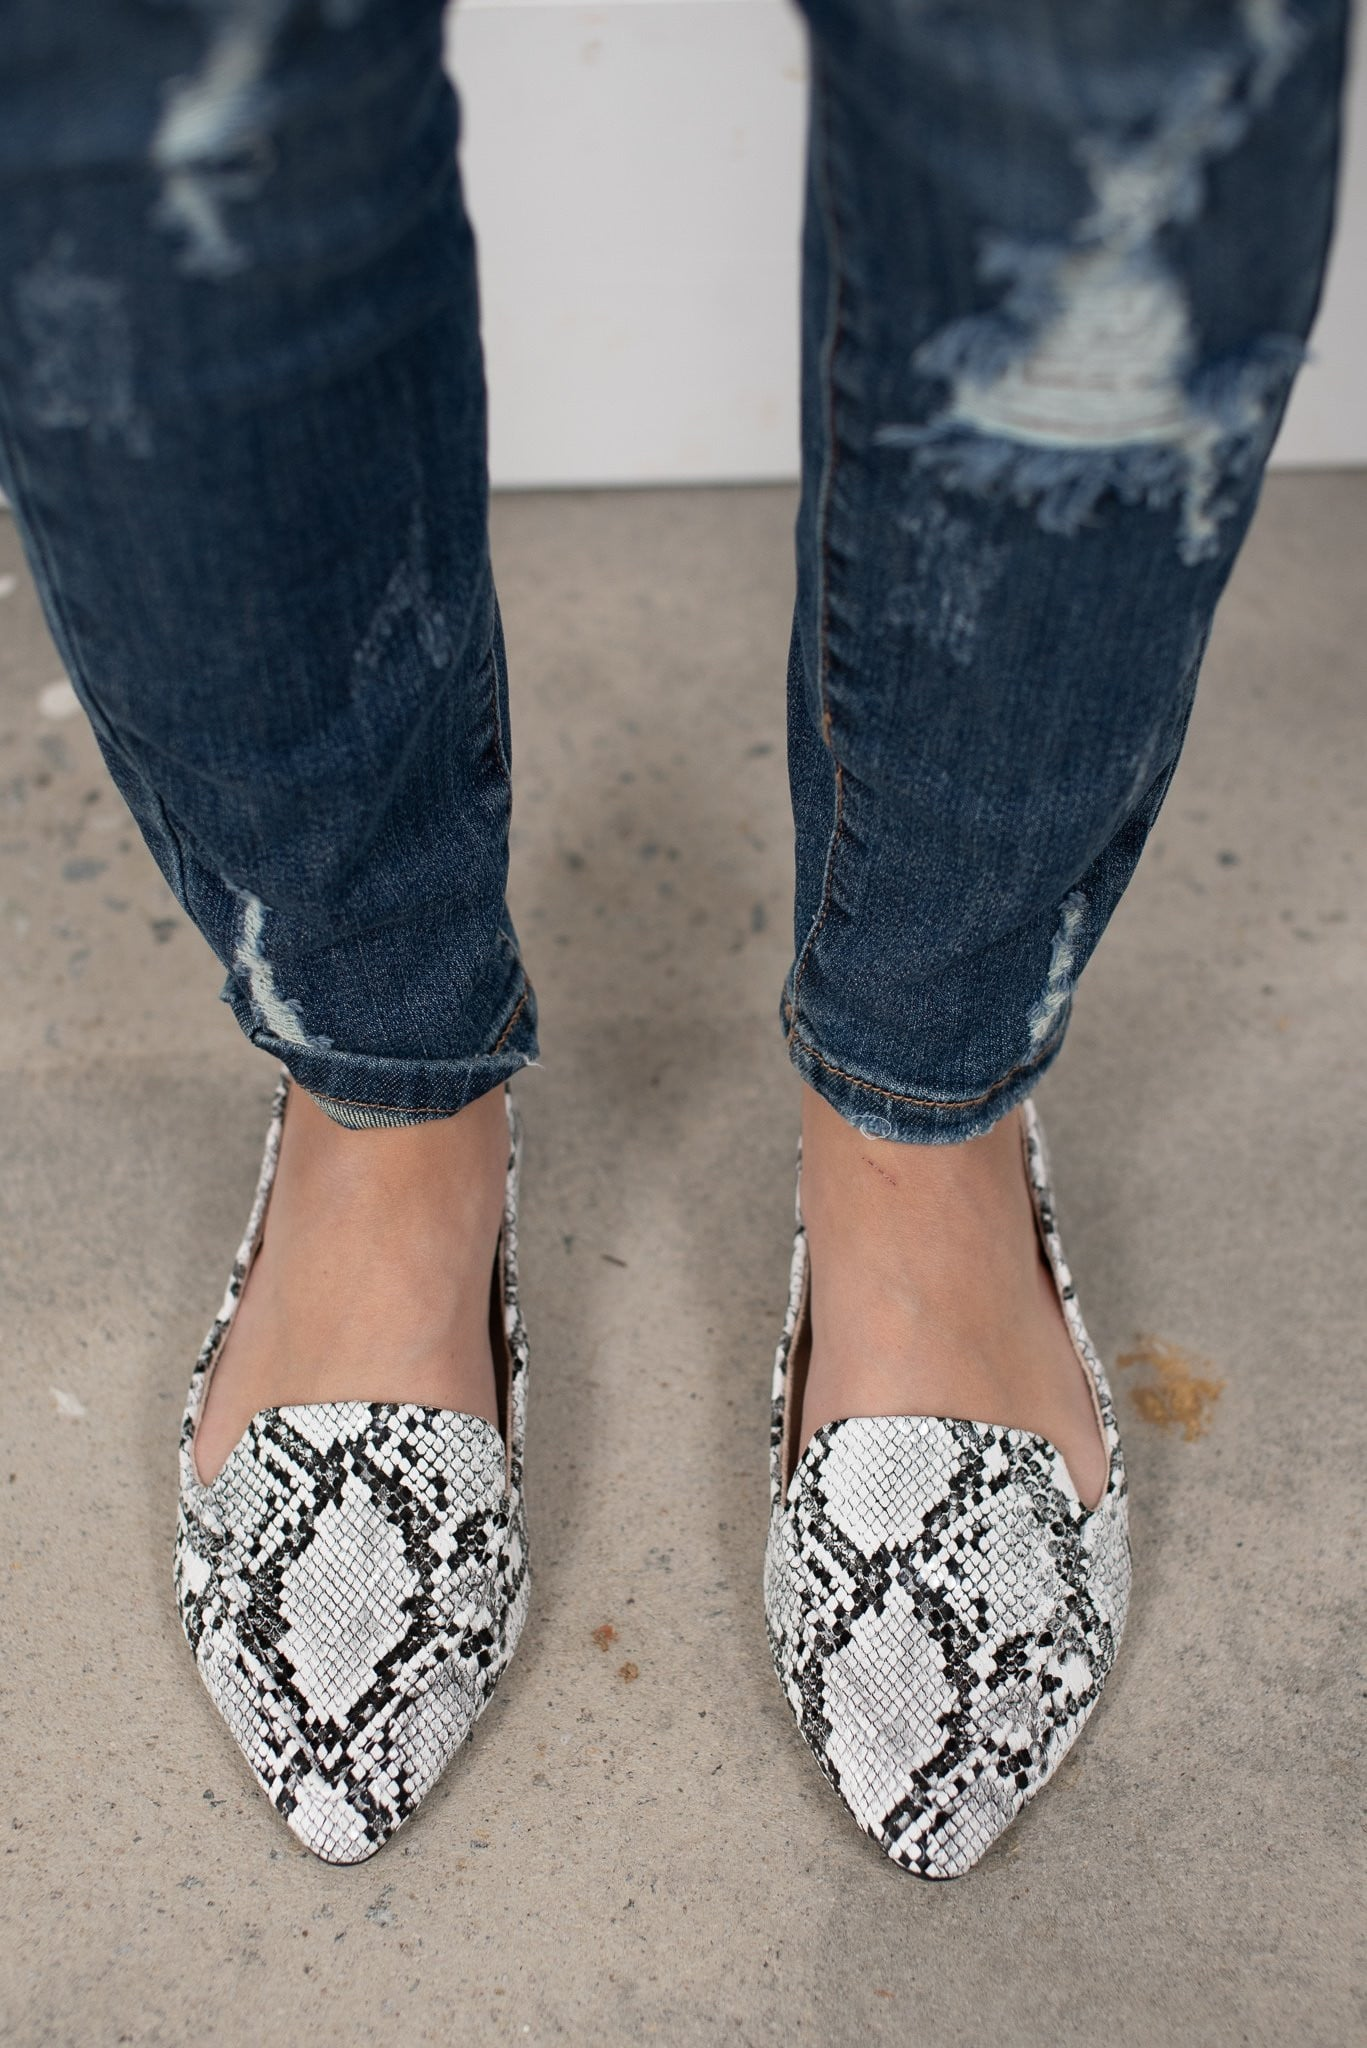 Snow Snakeskin Shoes - Essential Southern Charm